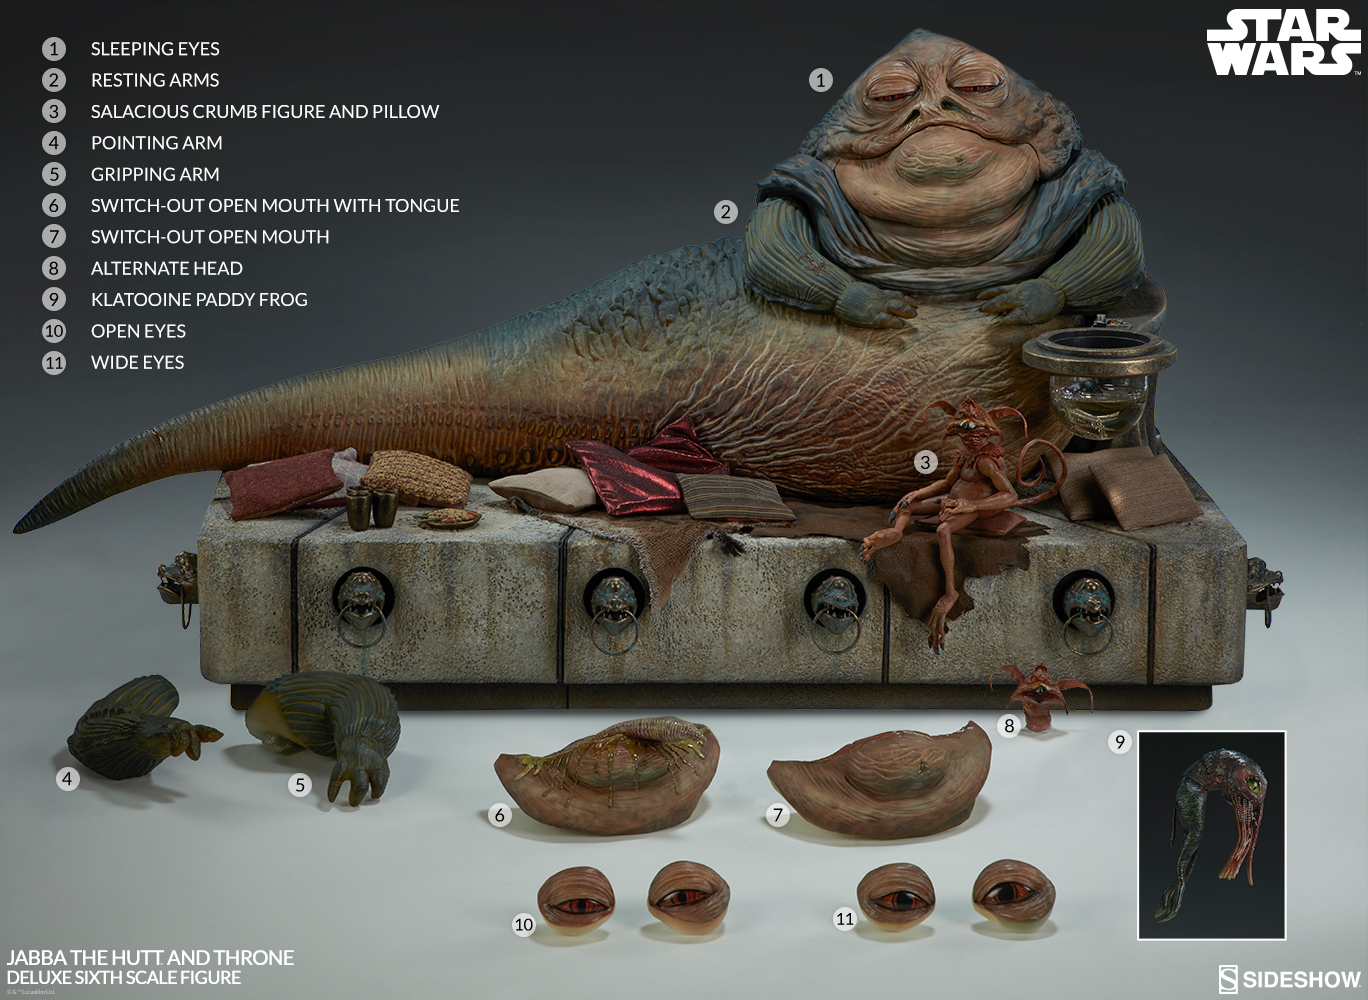 Sideshow Jabba the Hutt Sixth Scale Figure 10